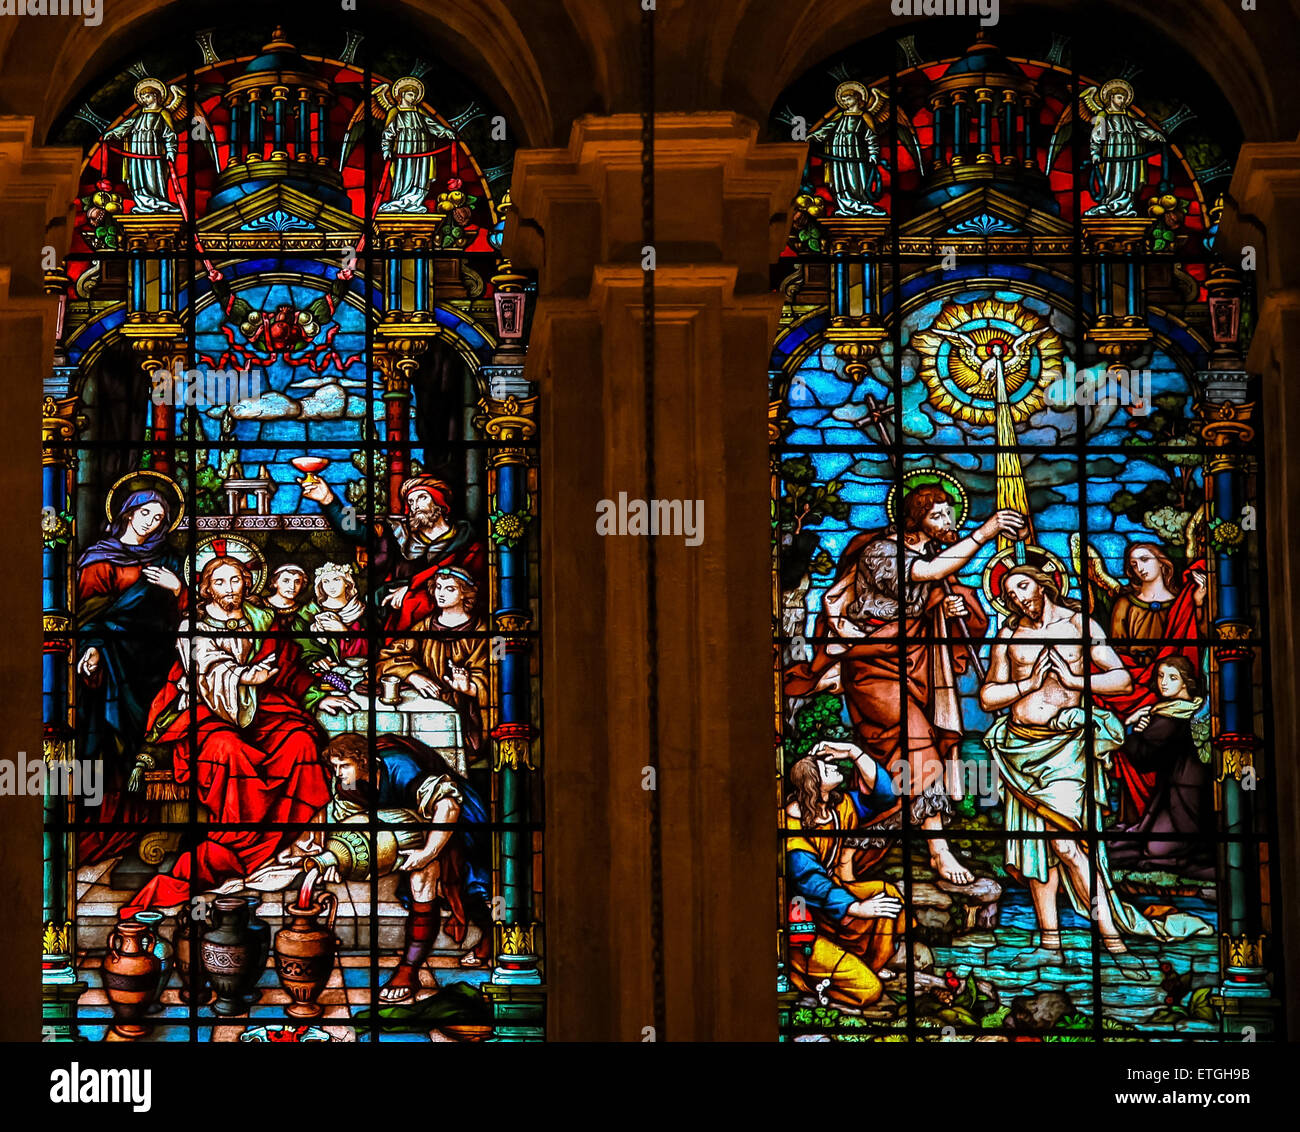 Stained glass window depicting, on the left, Jesus at the Wedding at Cana, and, on the right, Jesus baptized in Stock Photo